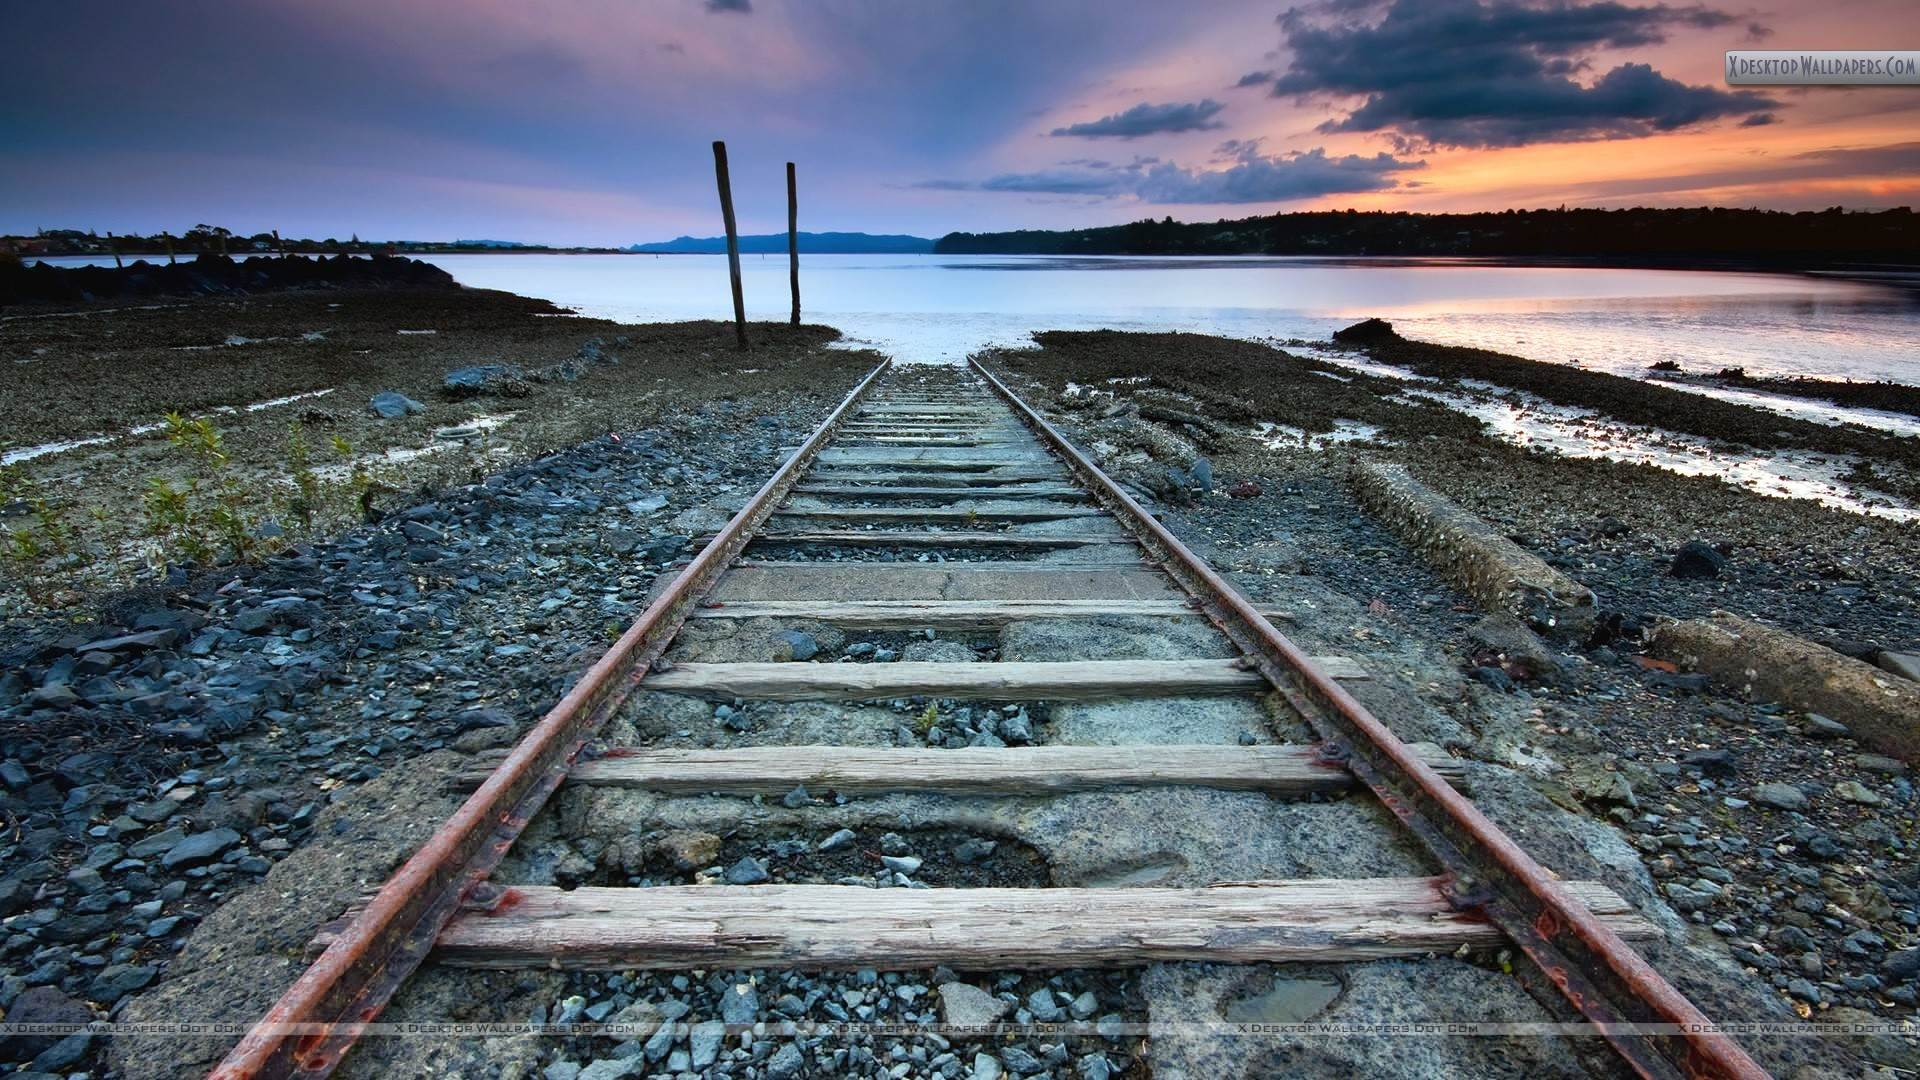 Railway Tracks Wallpapers, Photos & Image in HD